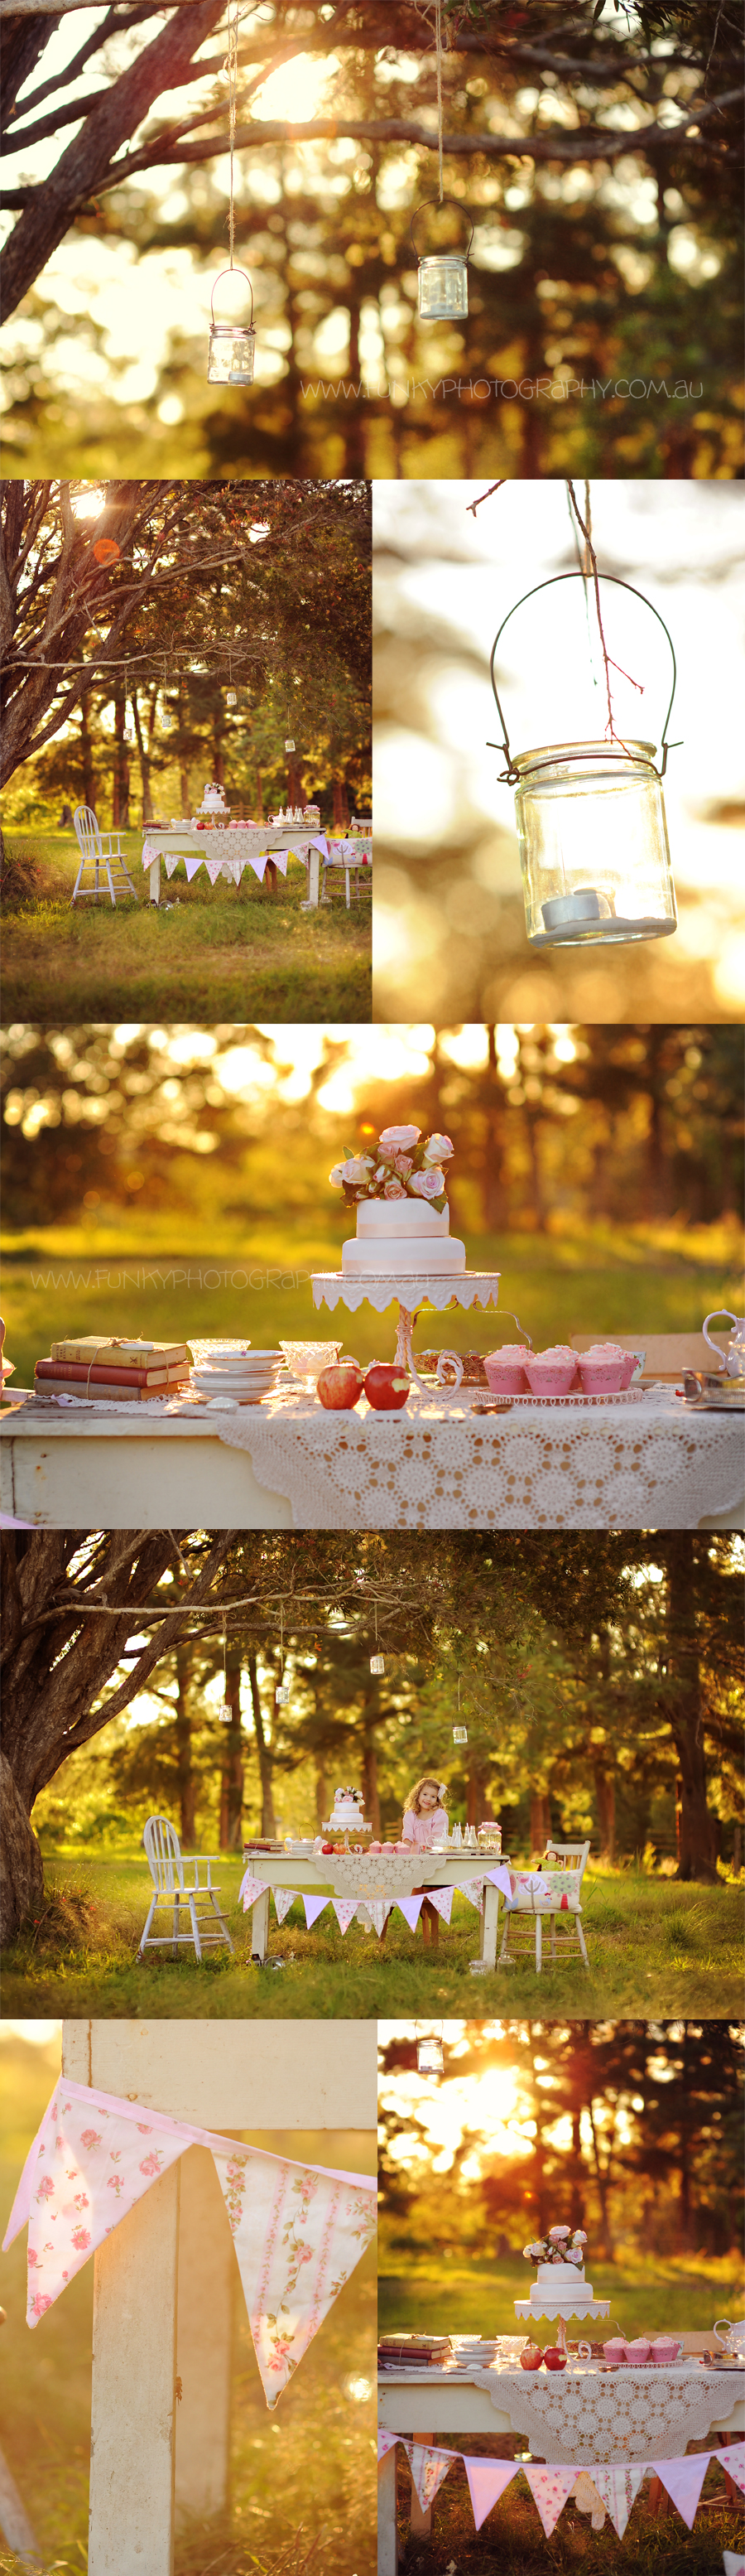 a vintage tea party with backlight under a tree